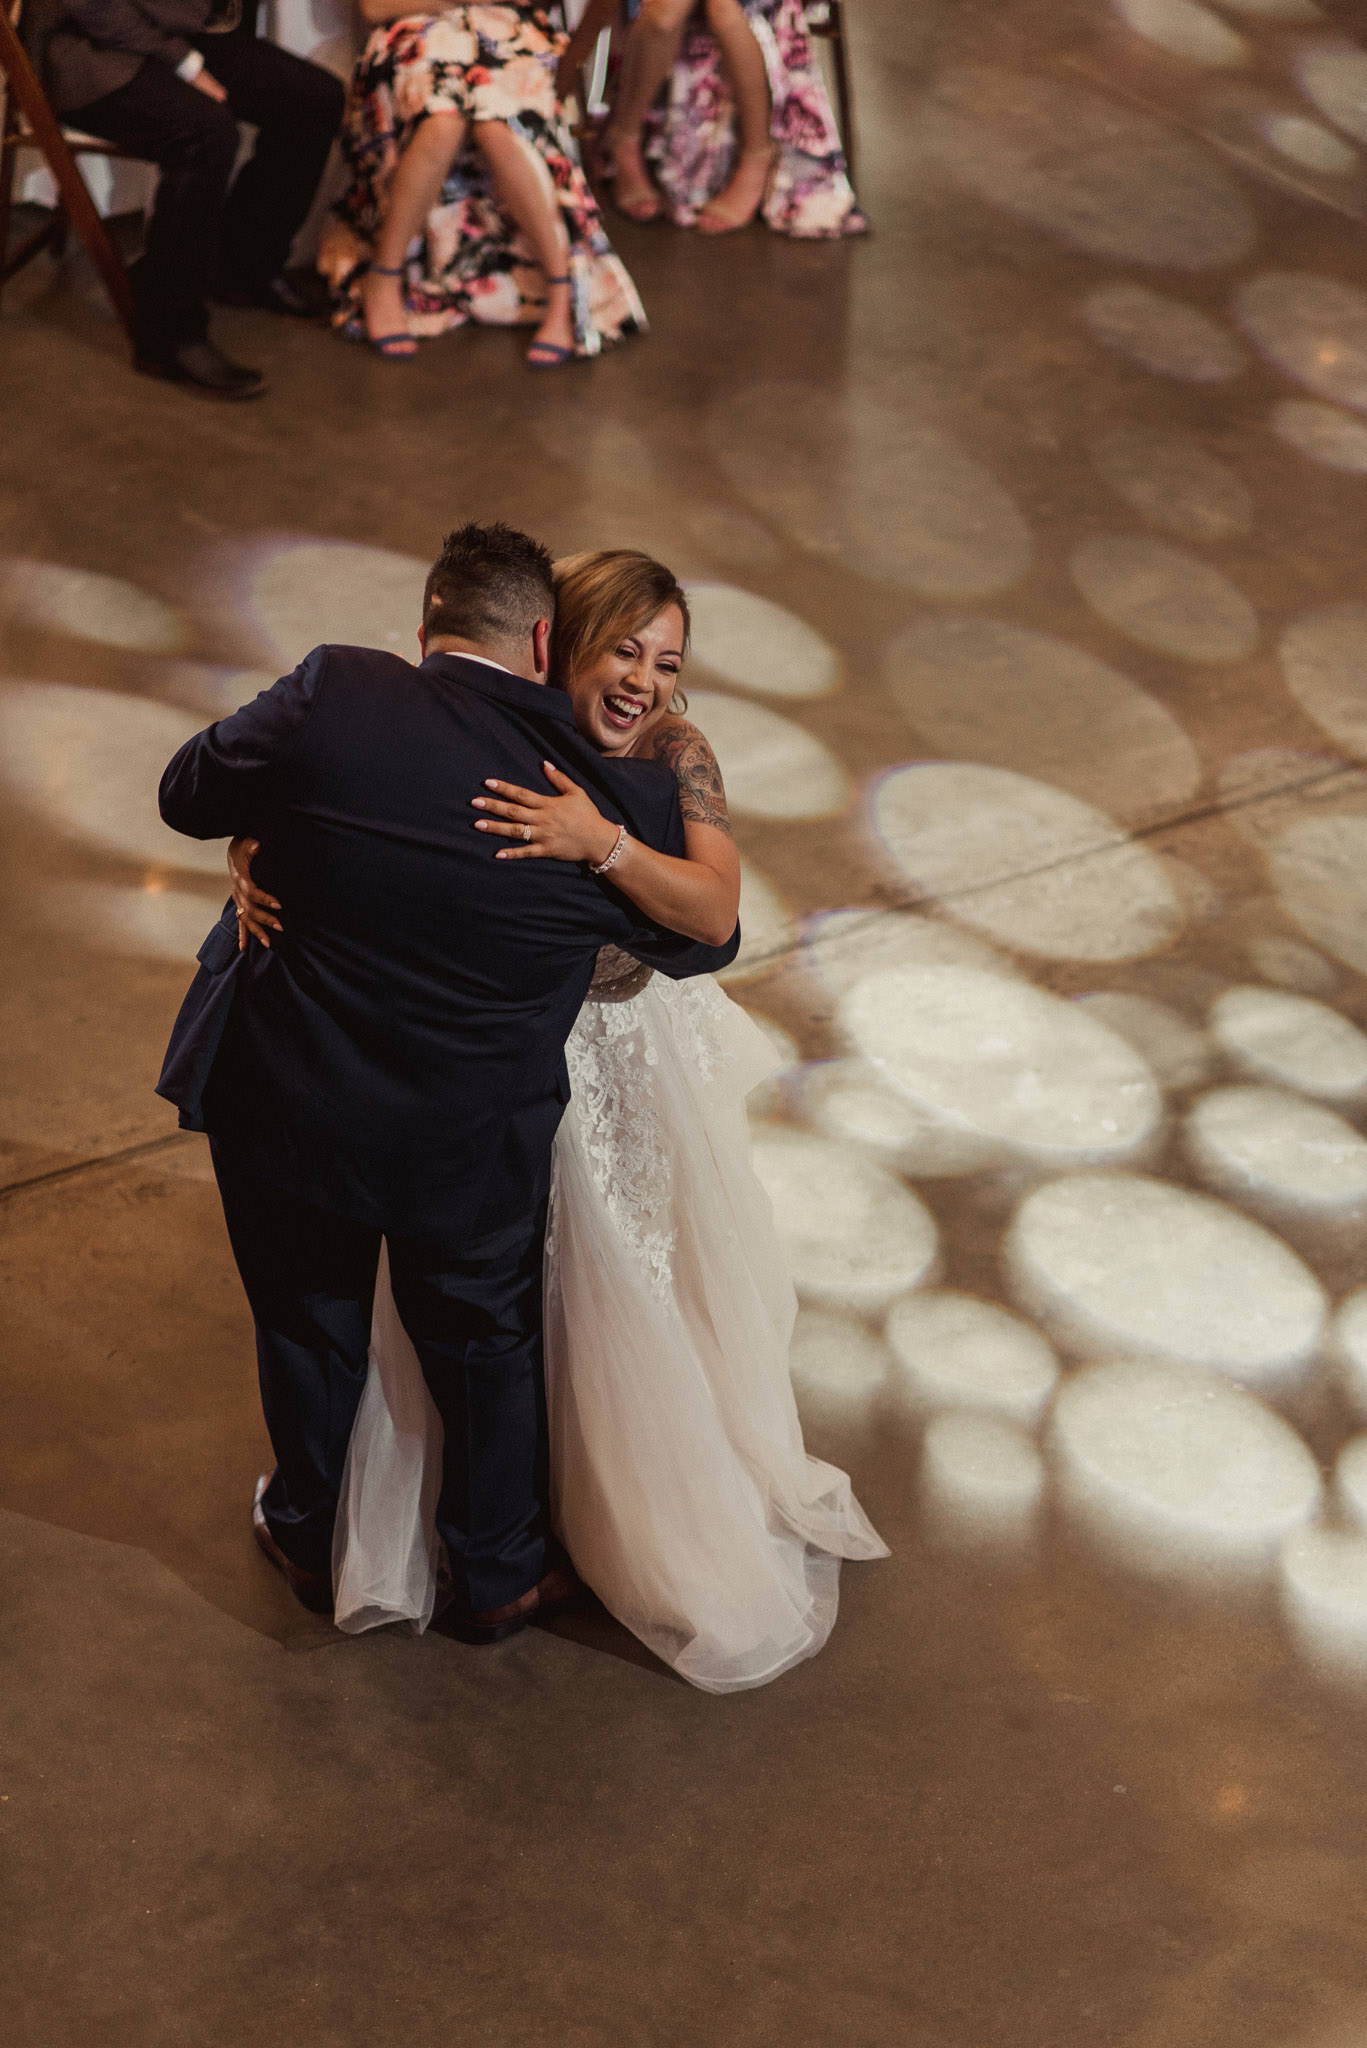 stephanie-gabe-peach-creek-ranch-wedding-college-station-houston-photographer-108.jpg